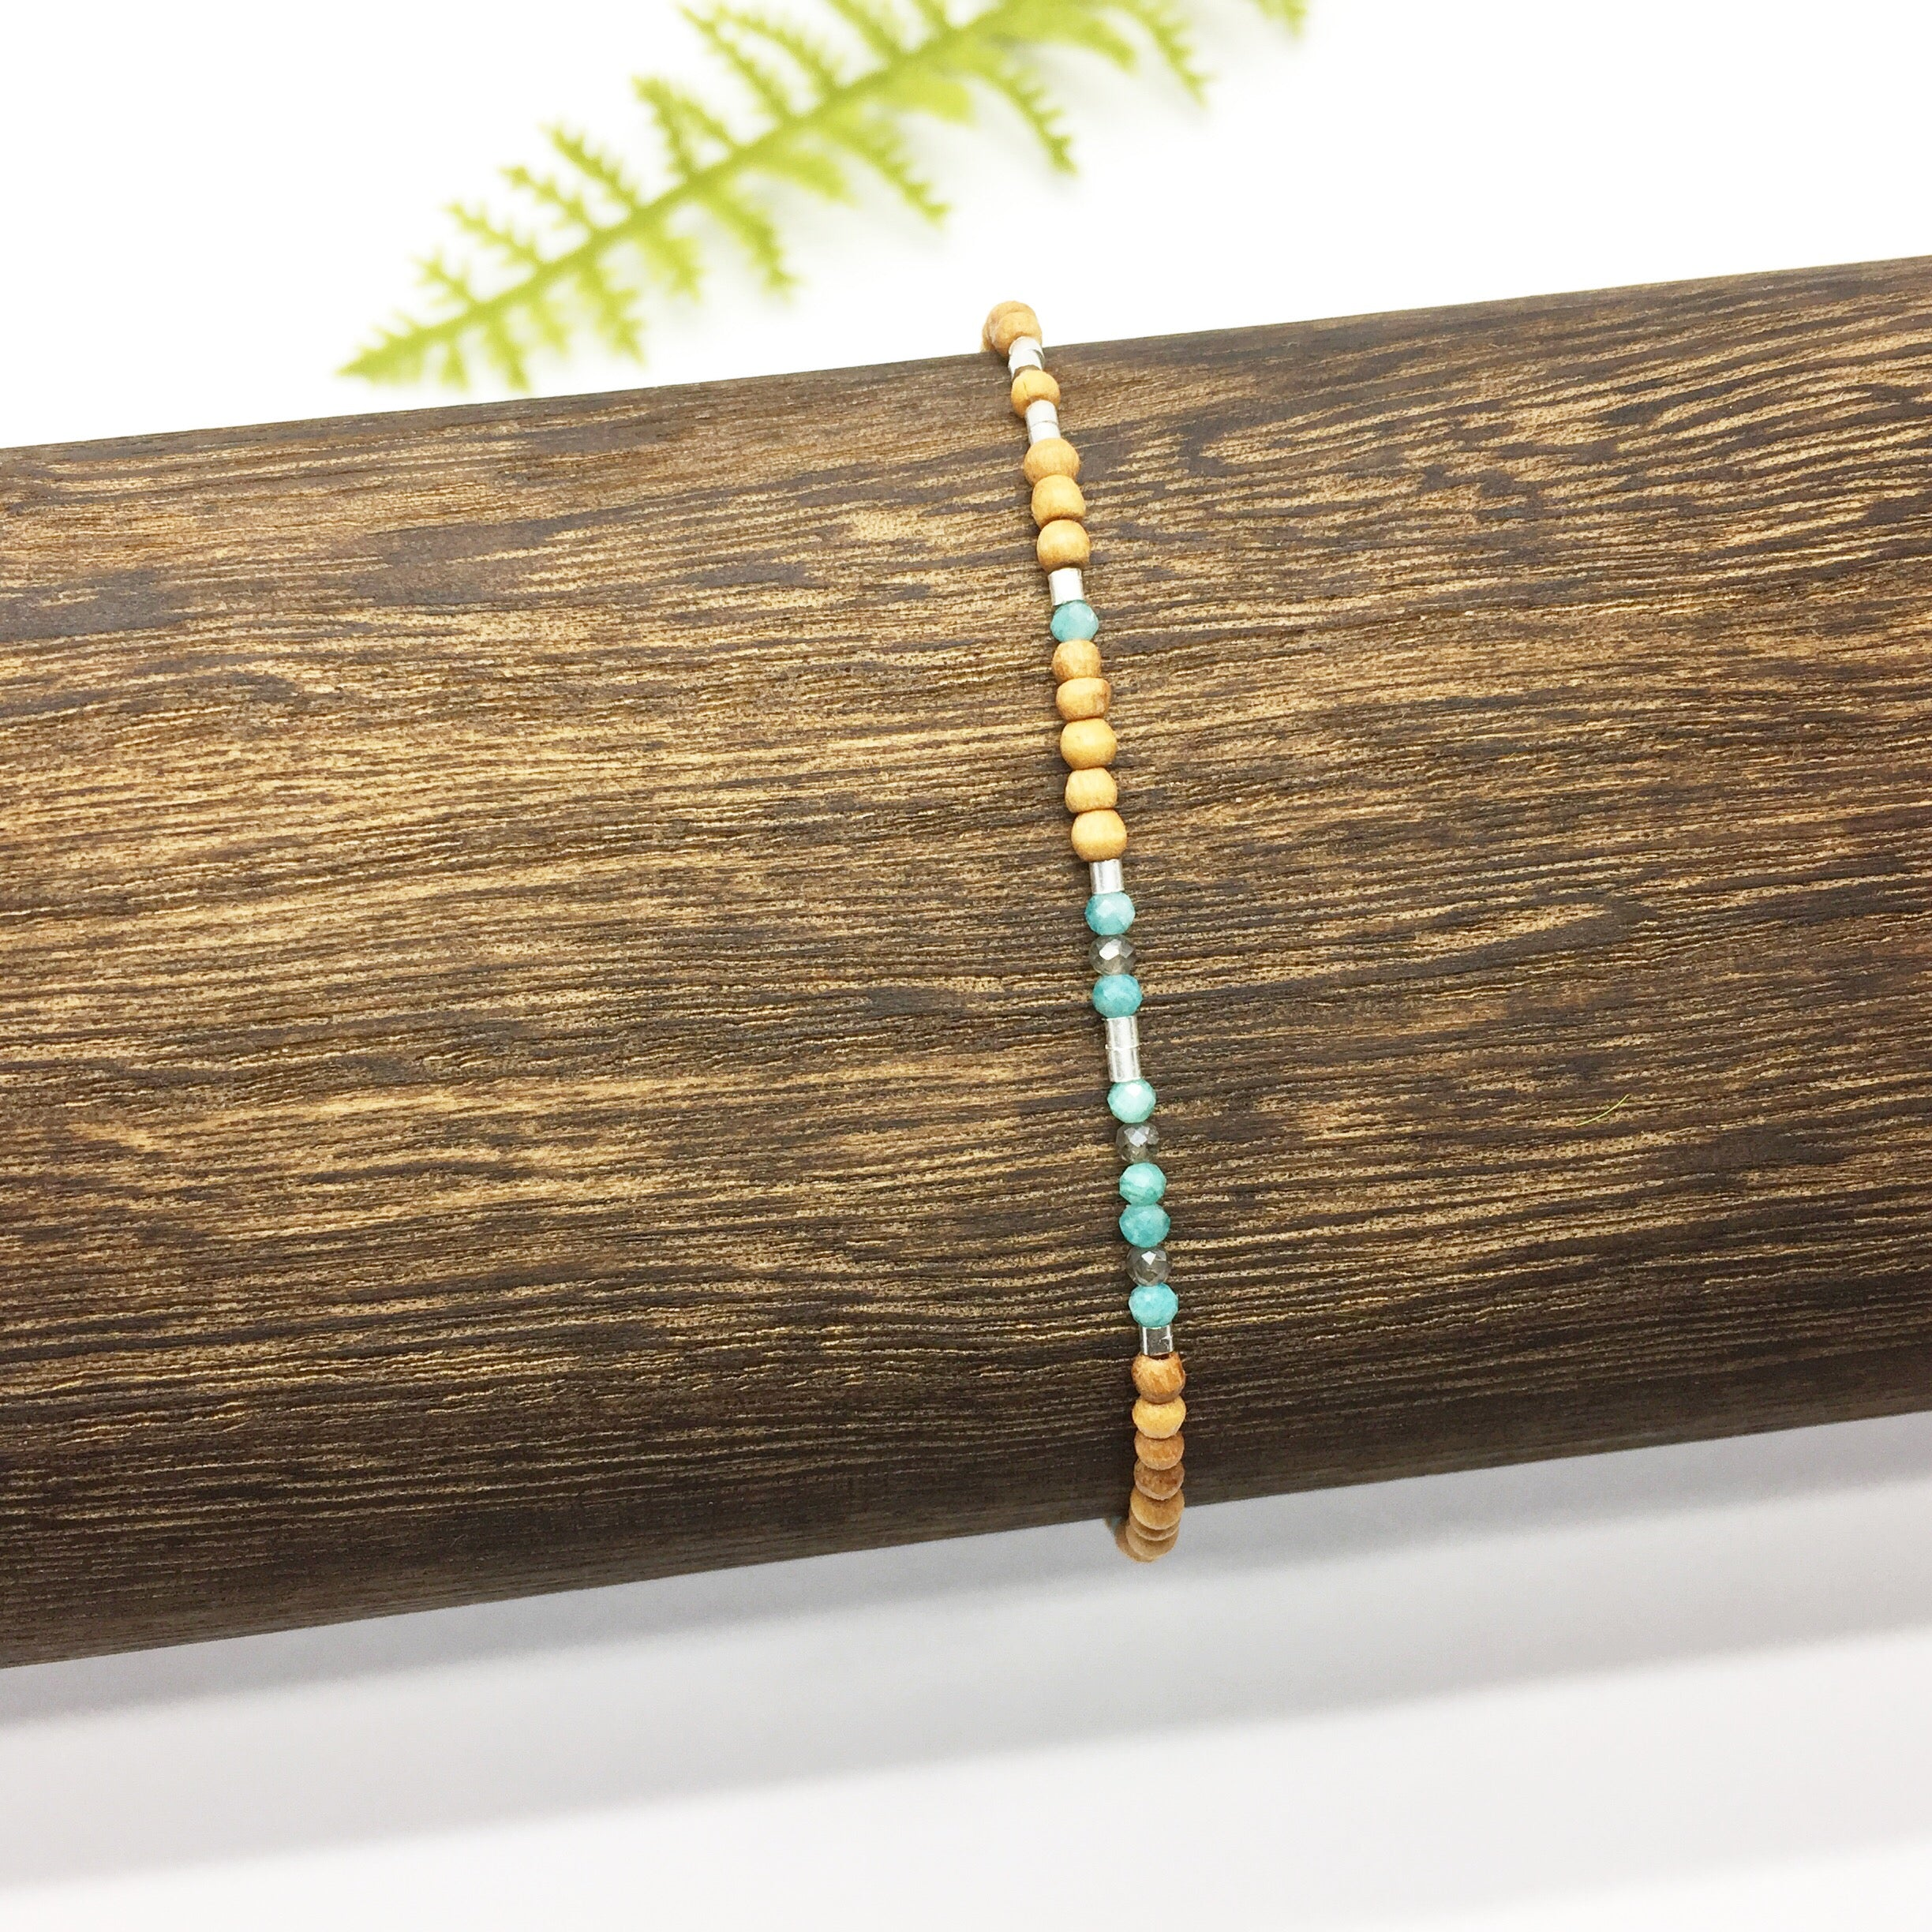 SEIZE THE DAY Sandalwood Morse Code Mantra® Bracelet